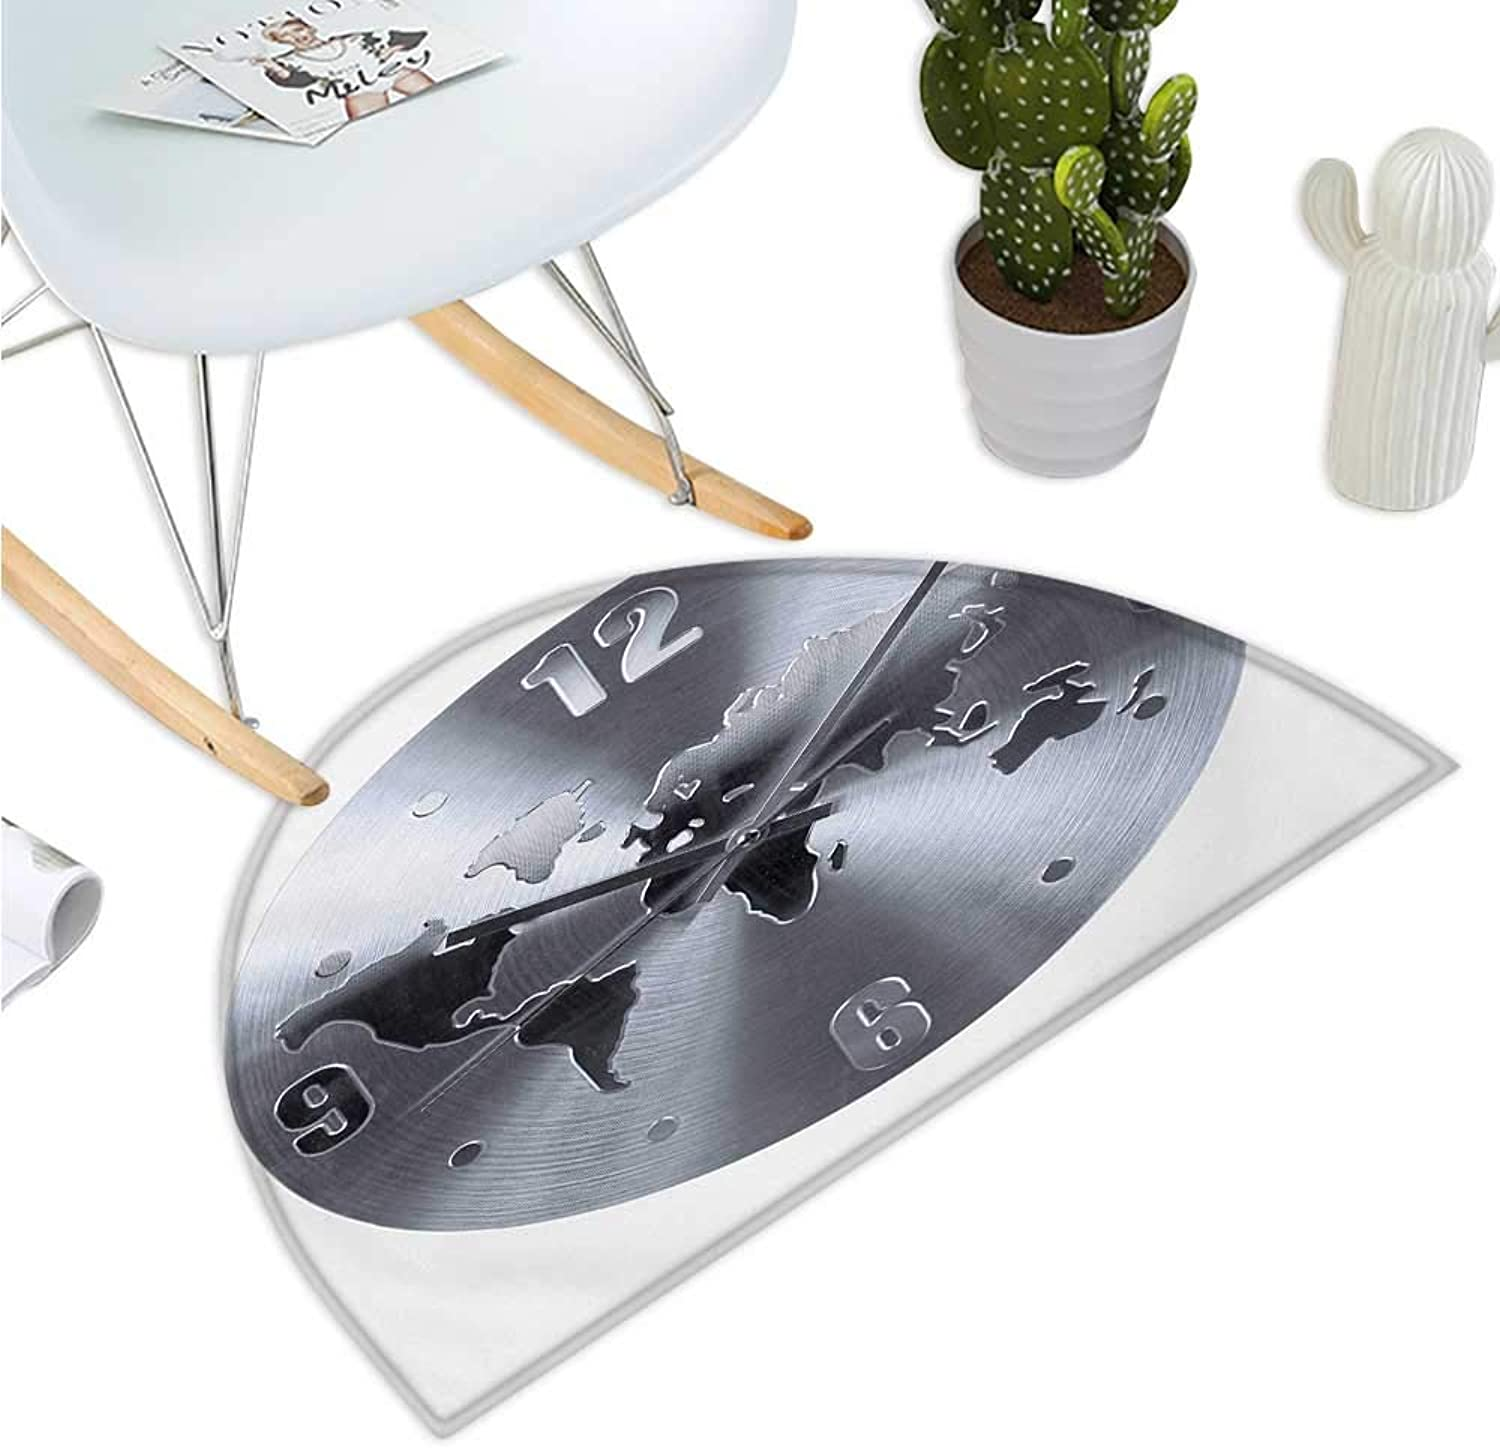 Clock Semicircular Cushion A Silver Clock Pattern with a World Map Checking The Time Hour and Minute Hand Print Entry Door Mat H 35.4  xD 53.1  Silver